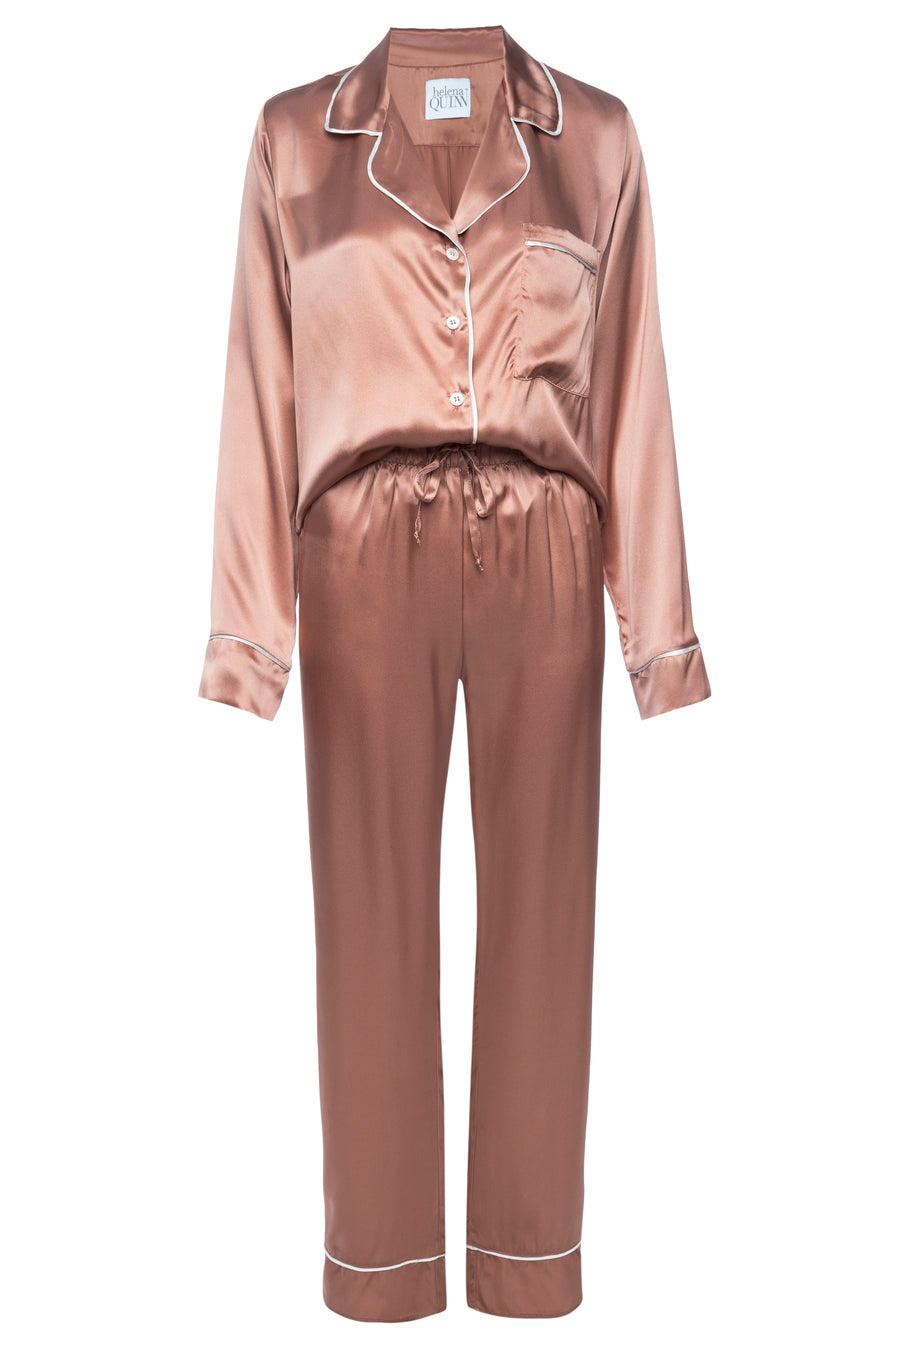 Silk Charmeuse Long Sleeved PJ Top + Pant Set: Apricot